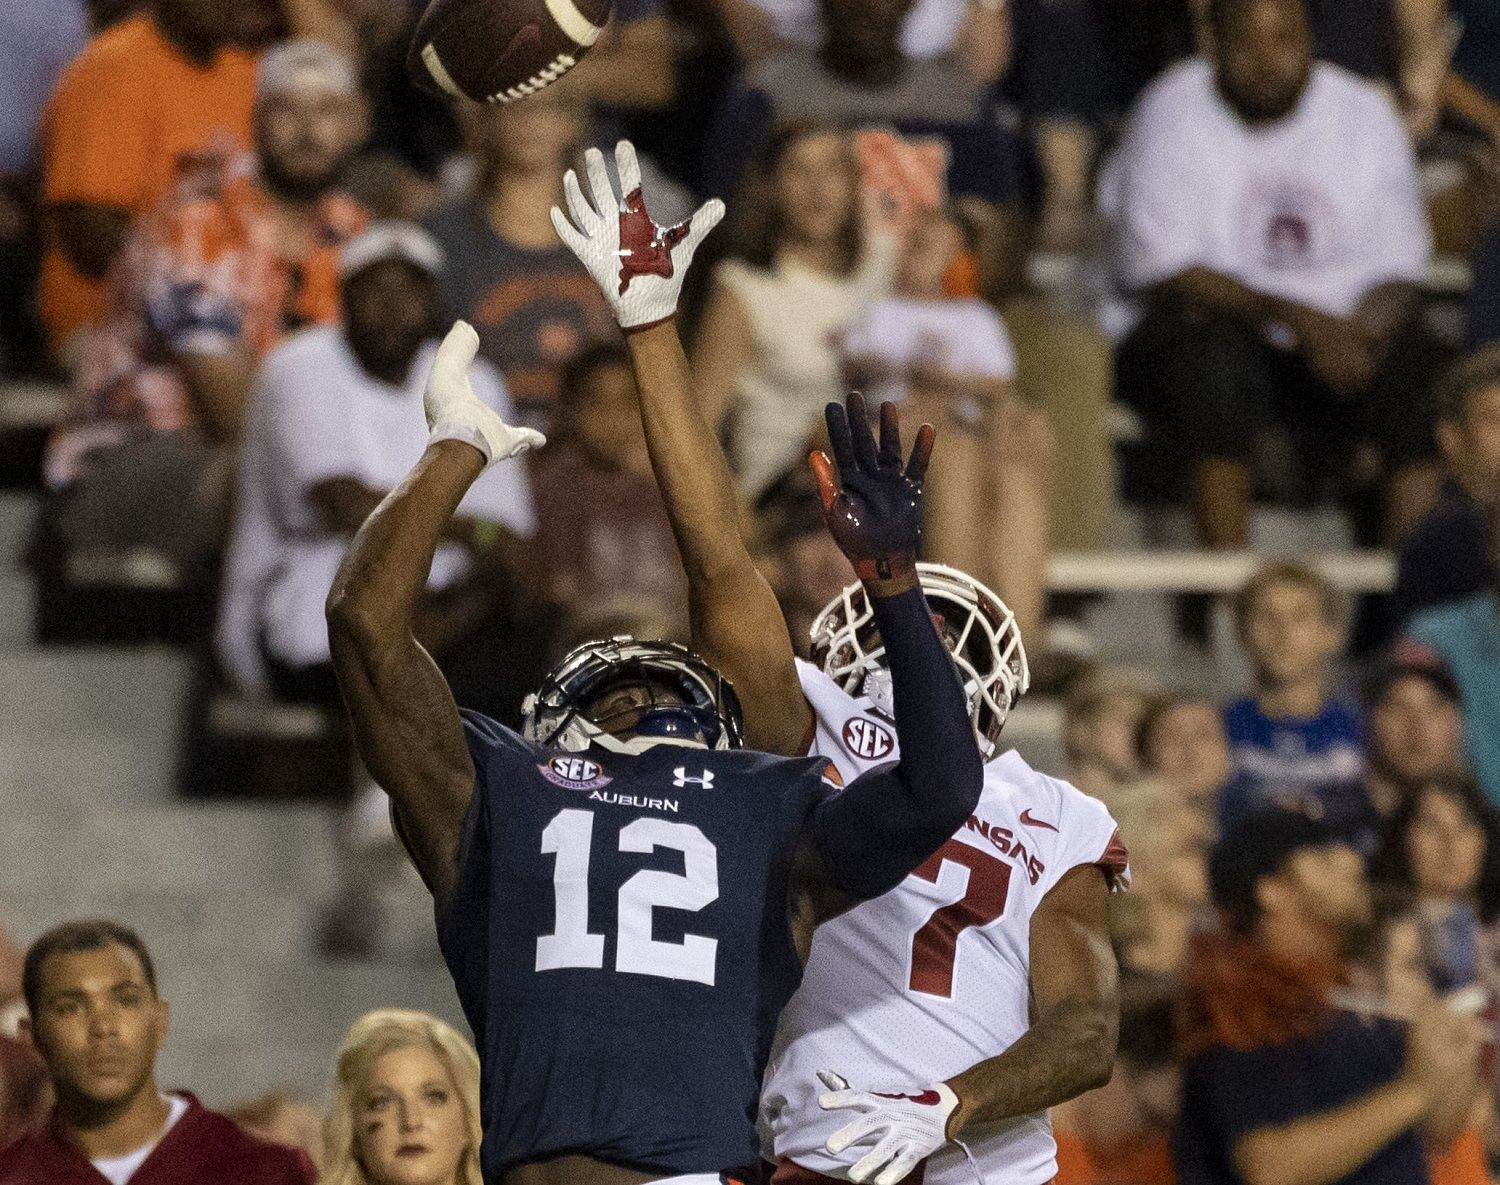 Auburn defensive back Jamel Dean (12) gets into position to defend a pass to Arkansas wide receiver Jonathan Nance (7) during the first half of an NCAA college football game, Saturday, Sept. 22, 2018, in Auburn, Ala. (AP Photo/Vasha Hunt)